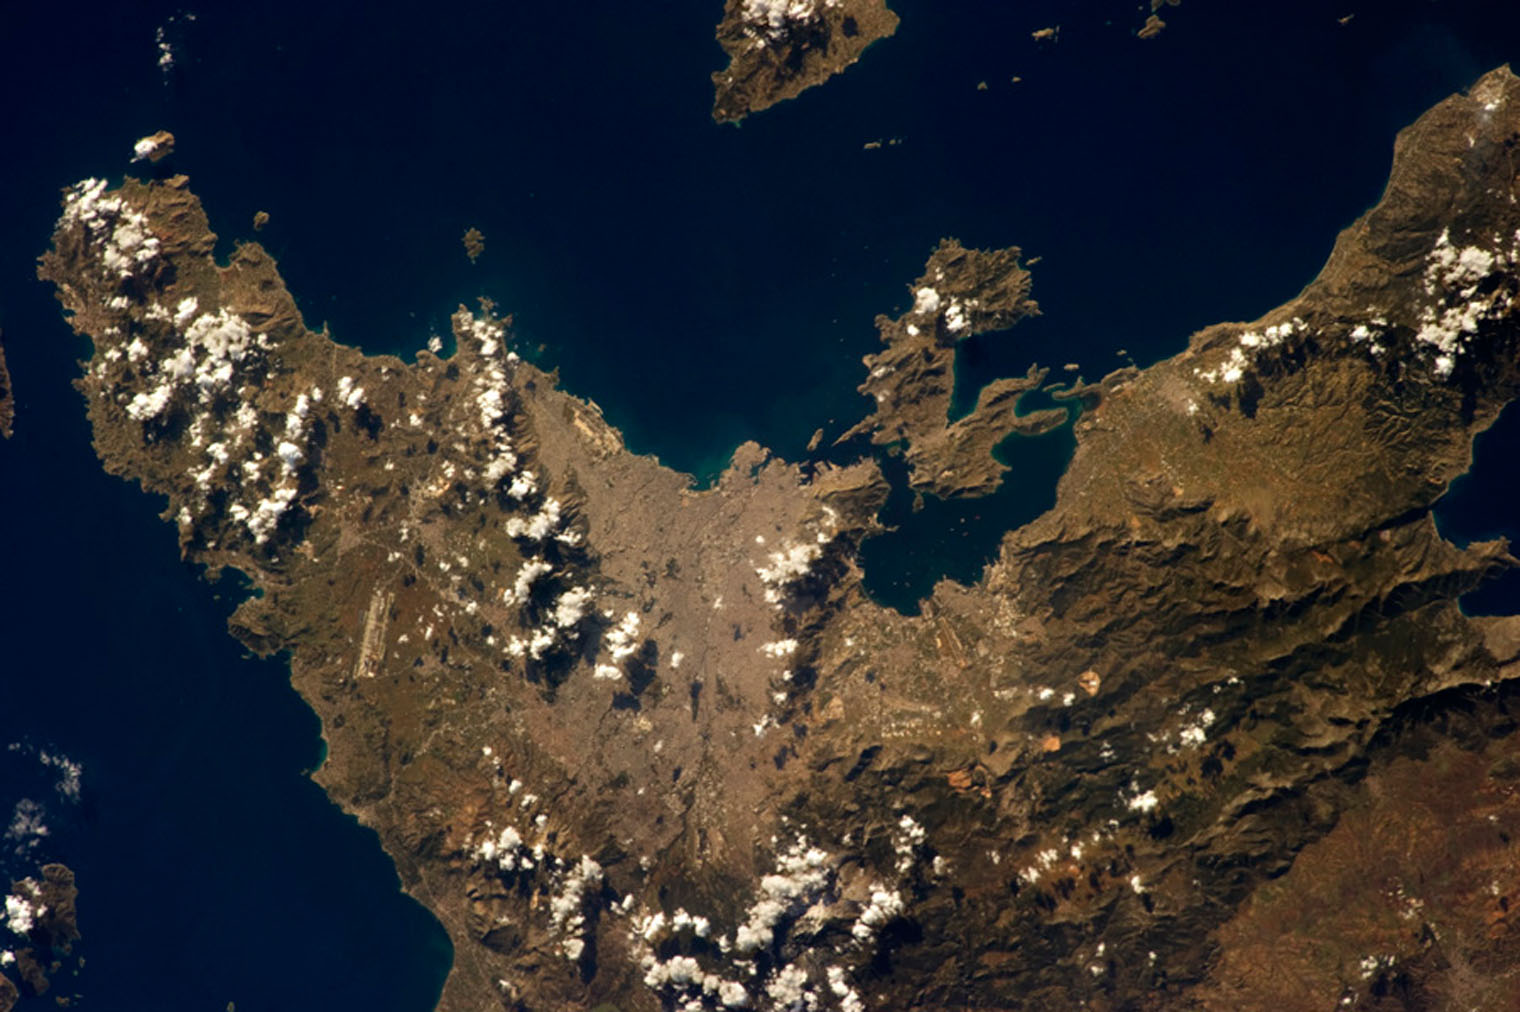 Athens from space